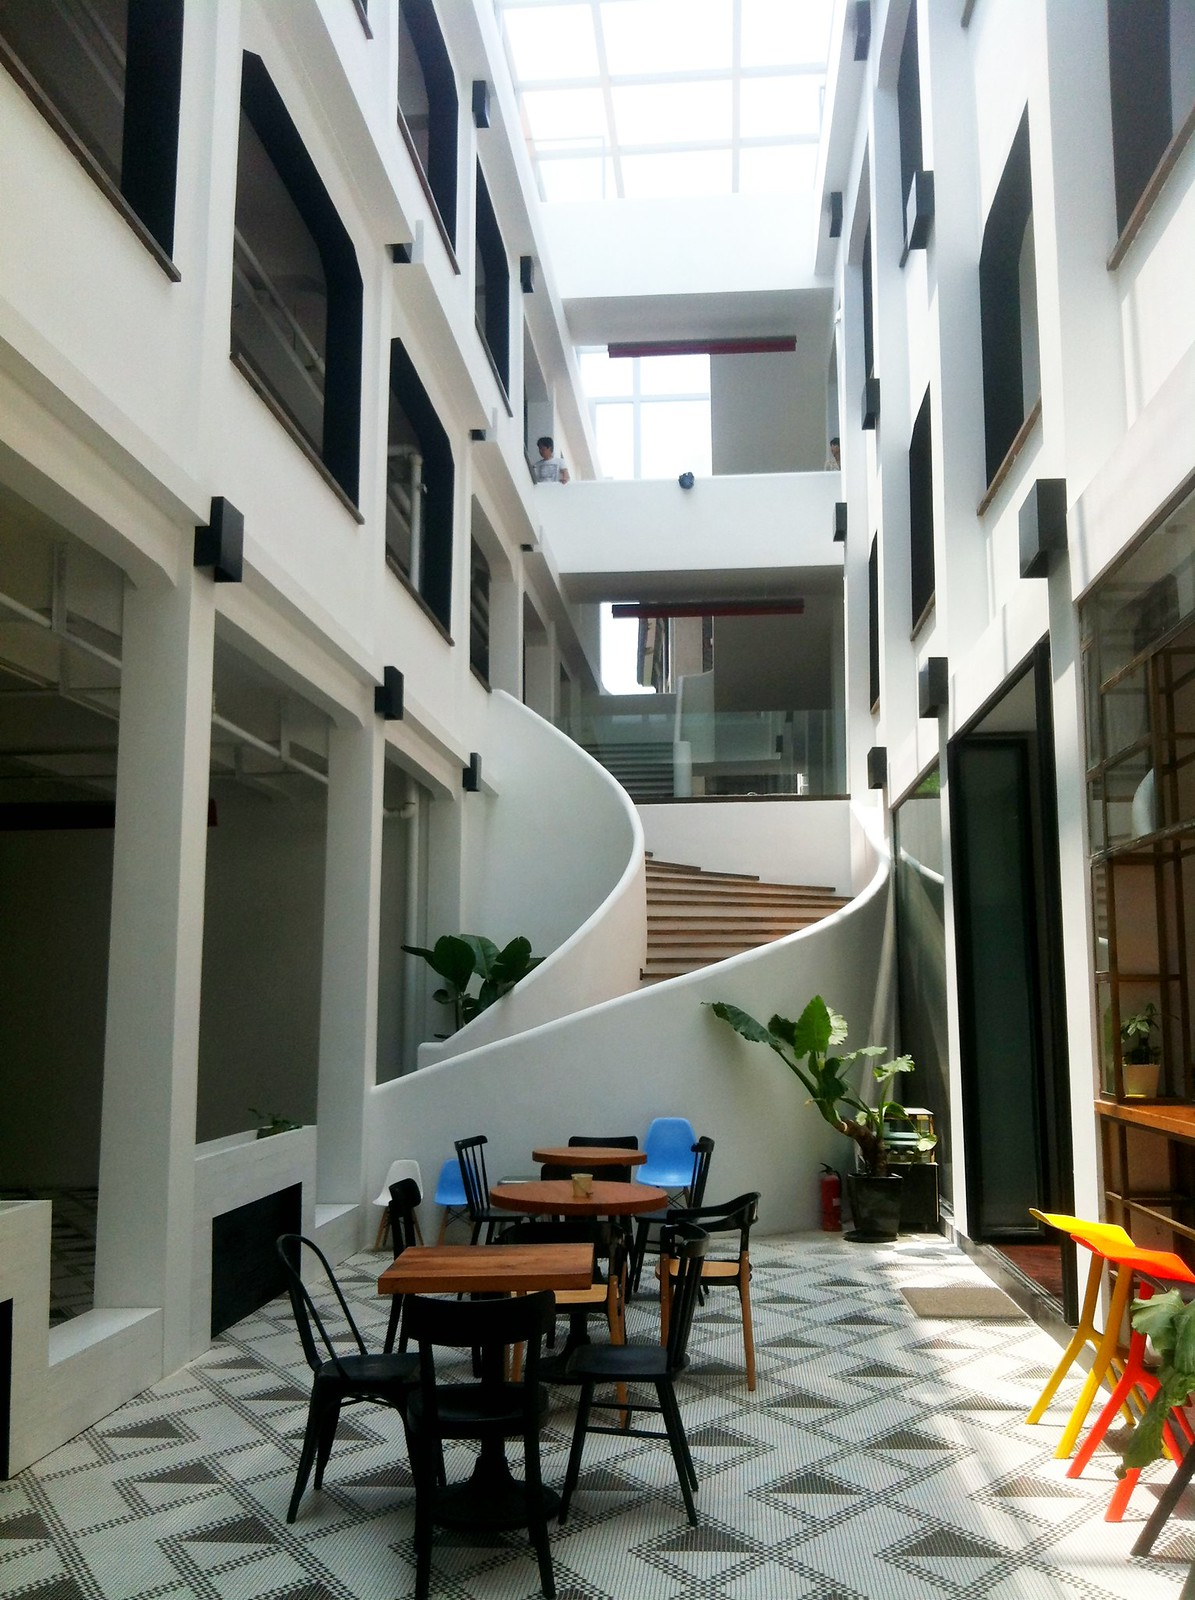 AllSet Learning's new office building